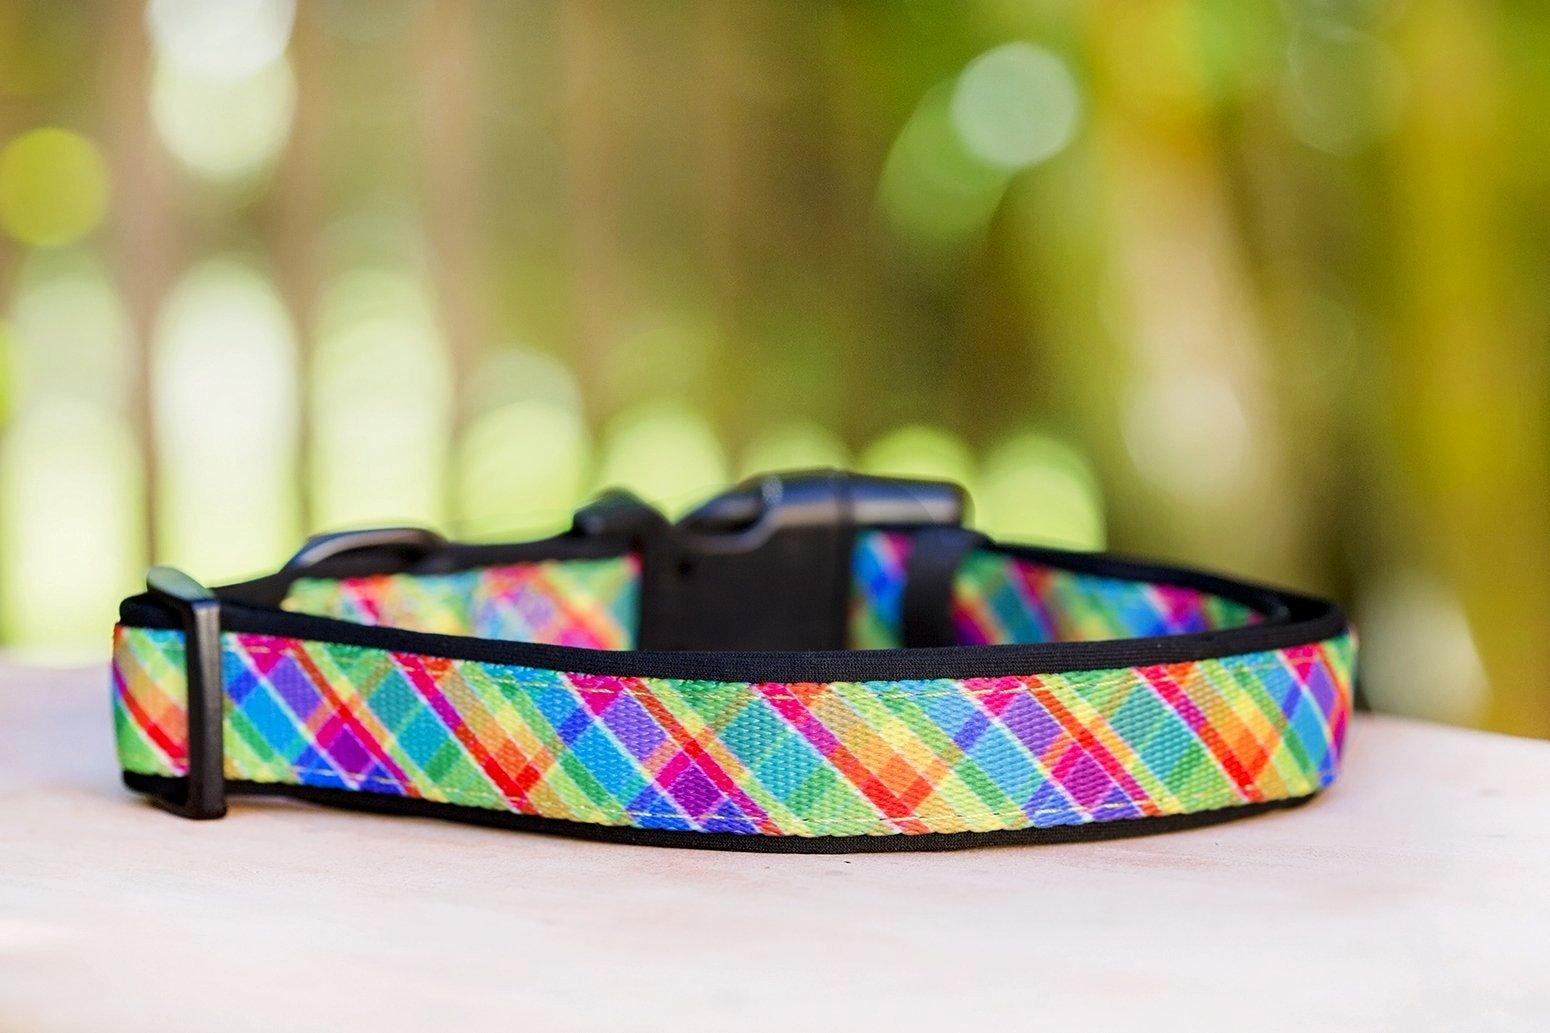 Candy Plaid Dog Collar (Neoprene)-Dog Collar-Dizzy Dog Collars-Small-Dizzy Dog Collars